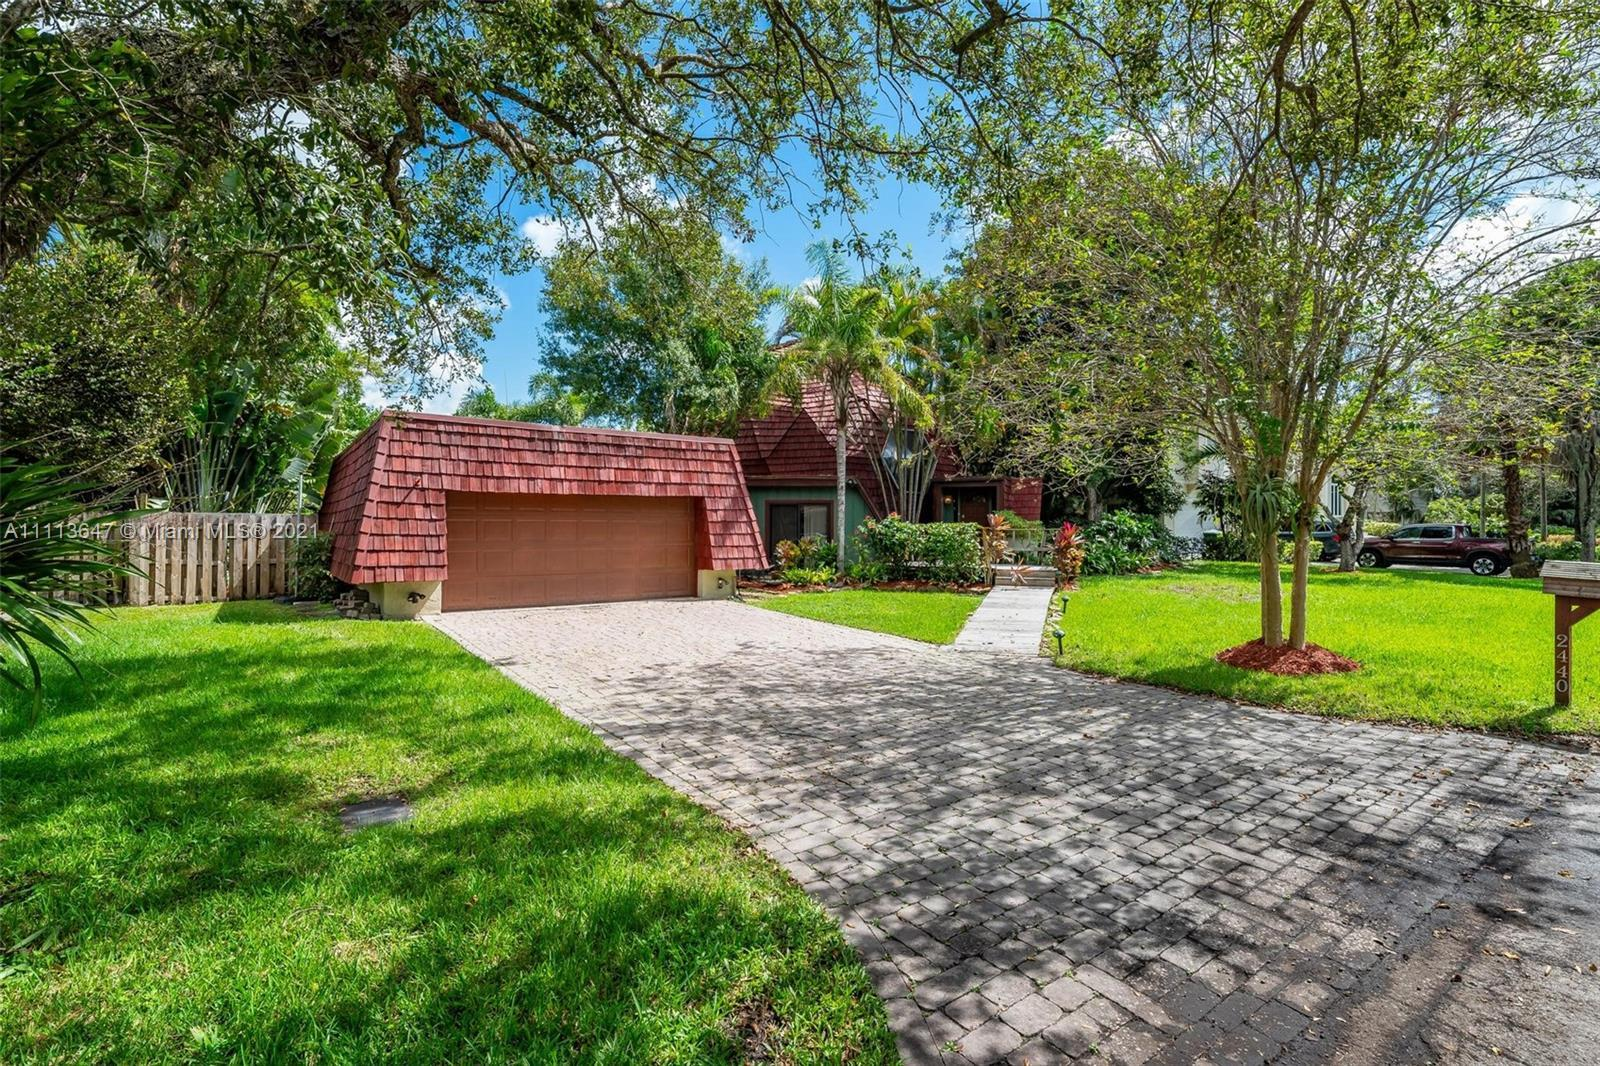 This whimsical home located in River Landings, a desirable private gated community made up of 19 tru